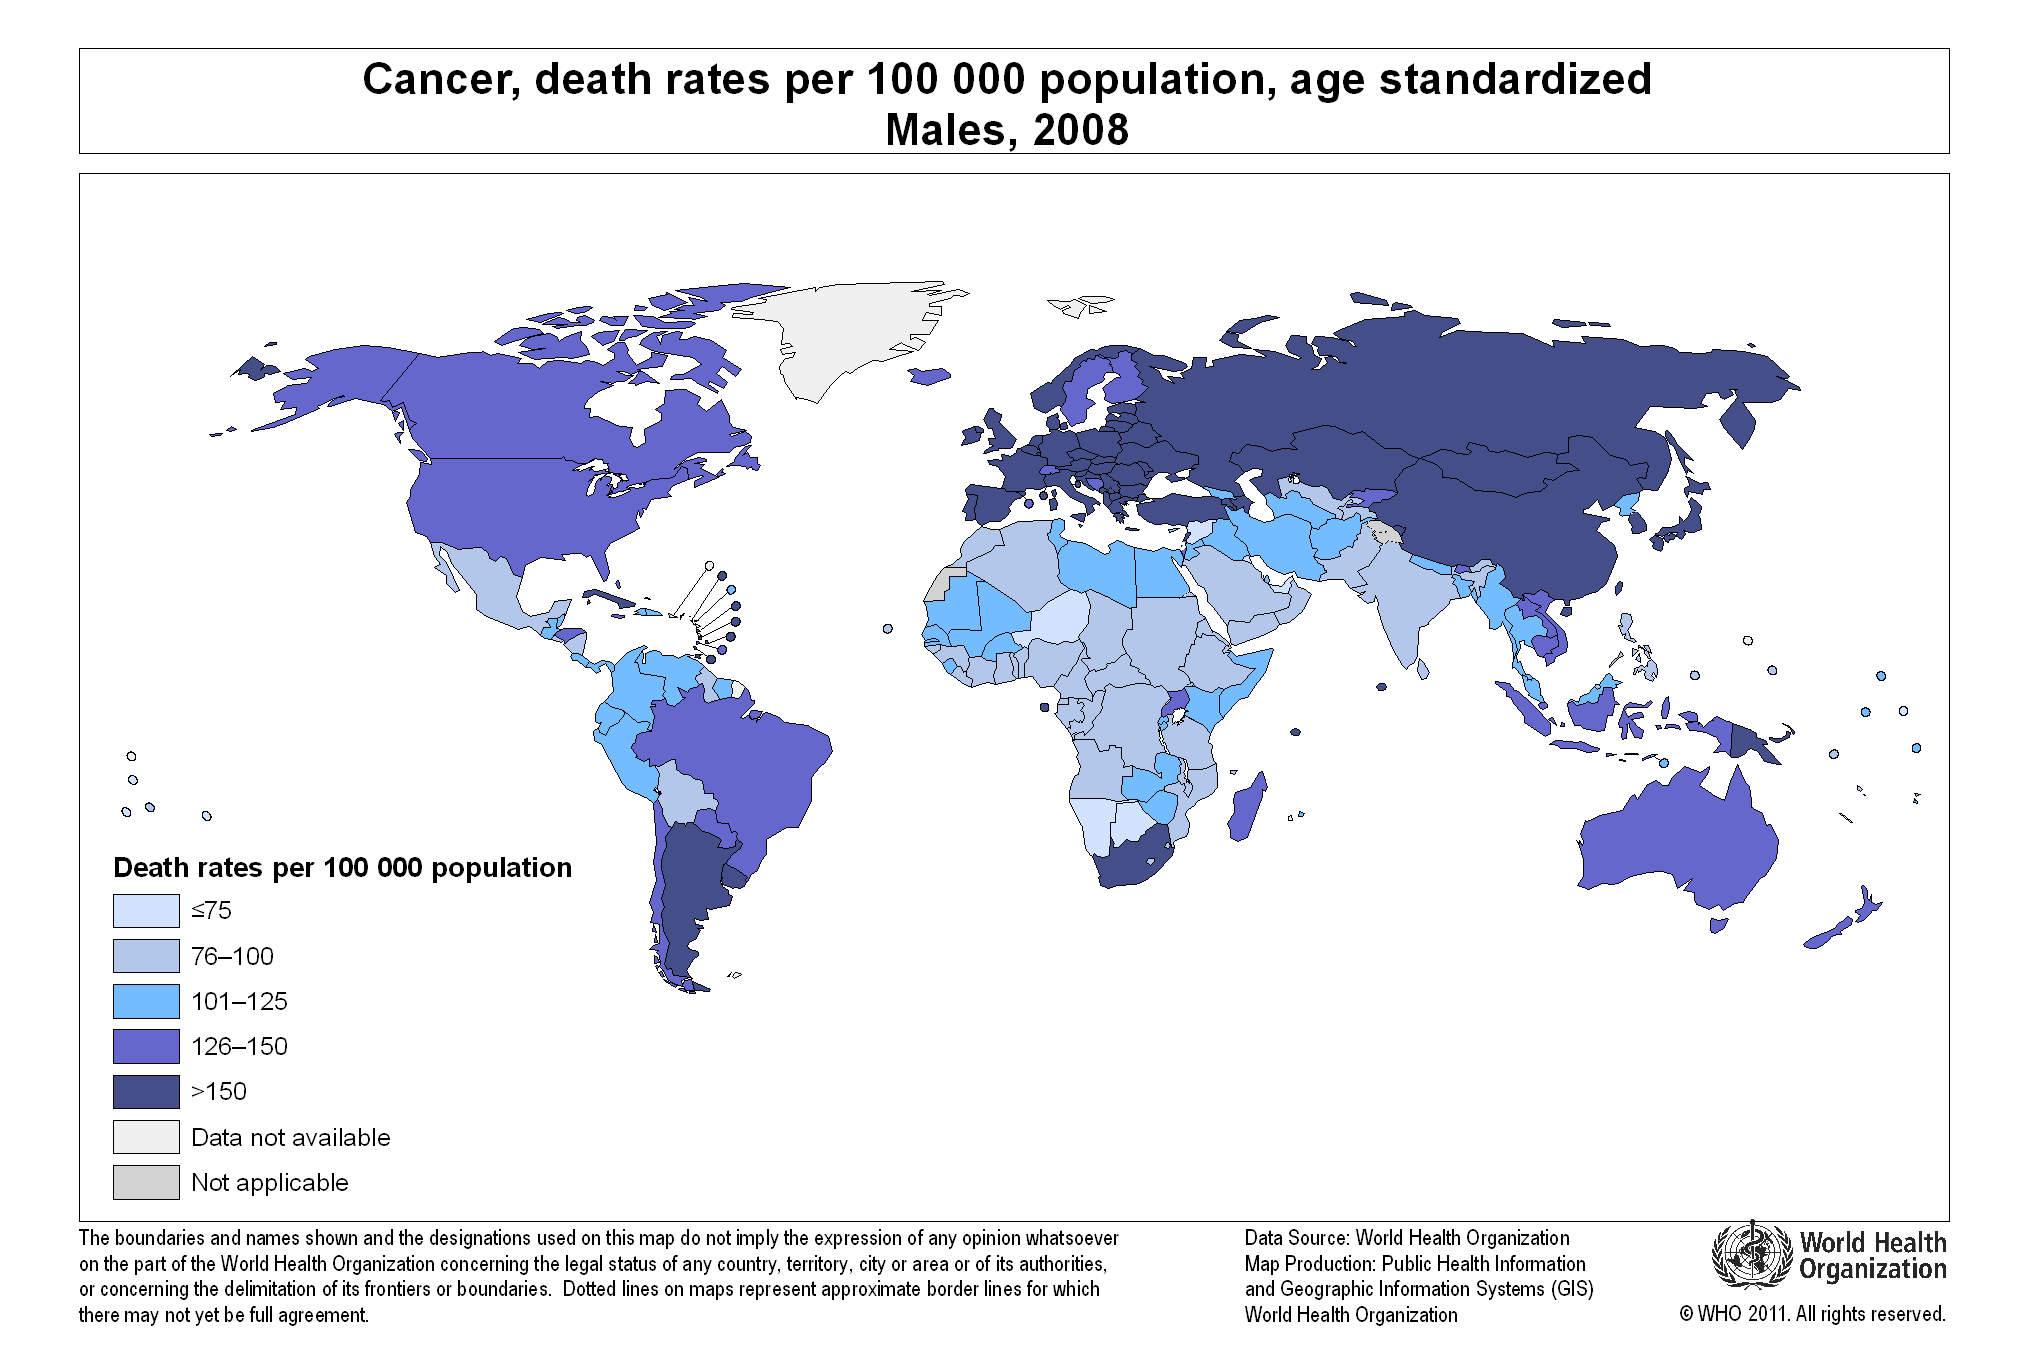 WHO IndexMundi Blog - Us cancer rate map